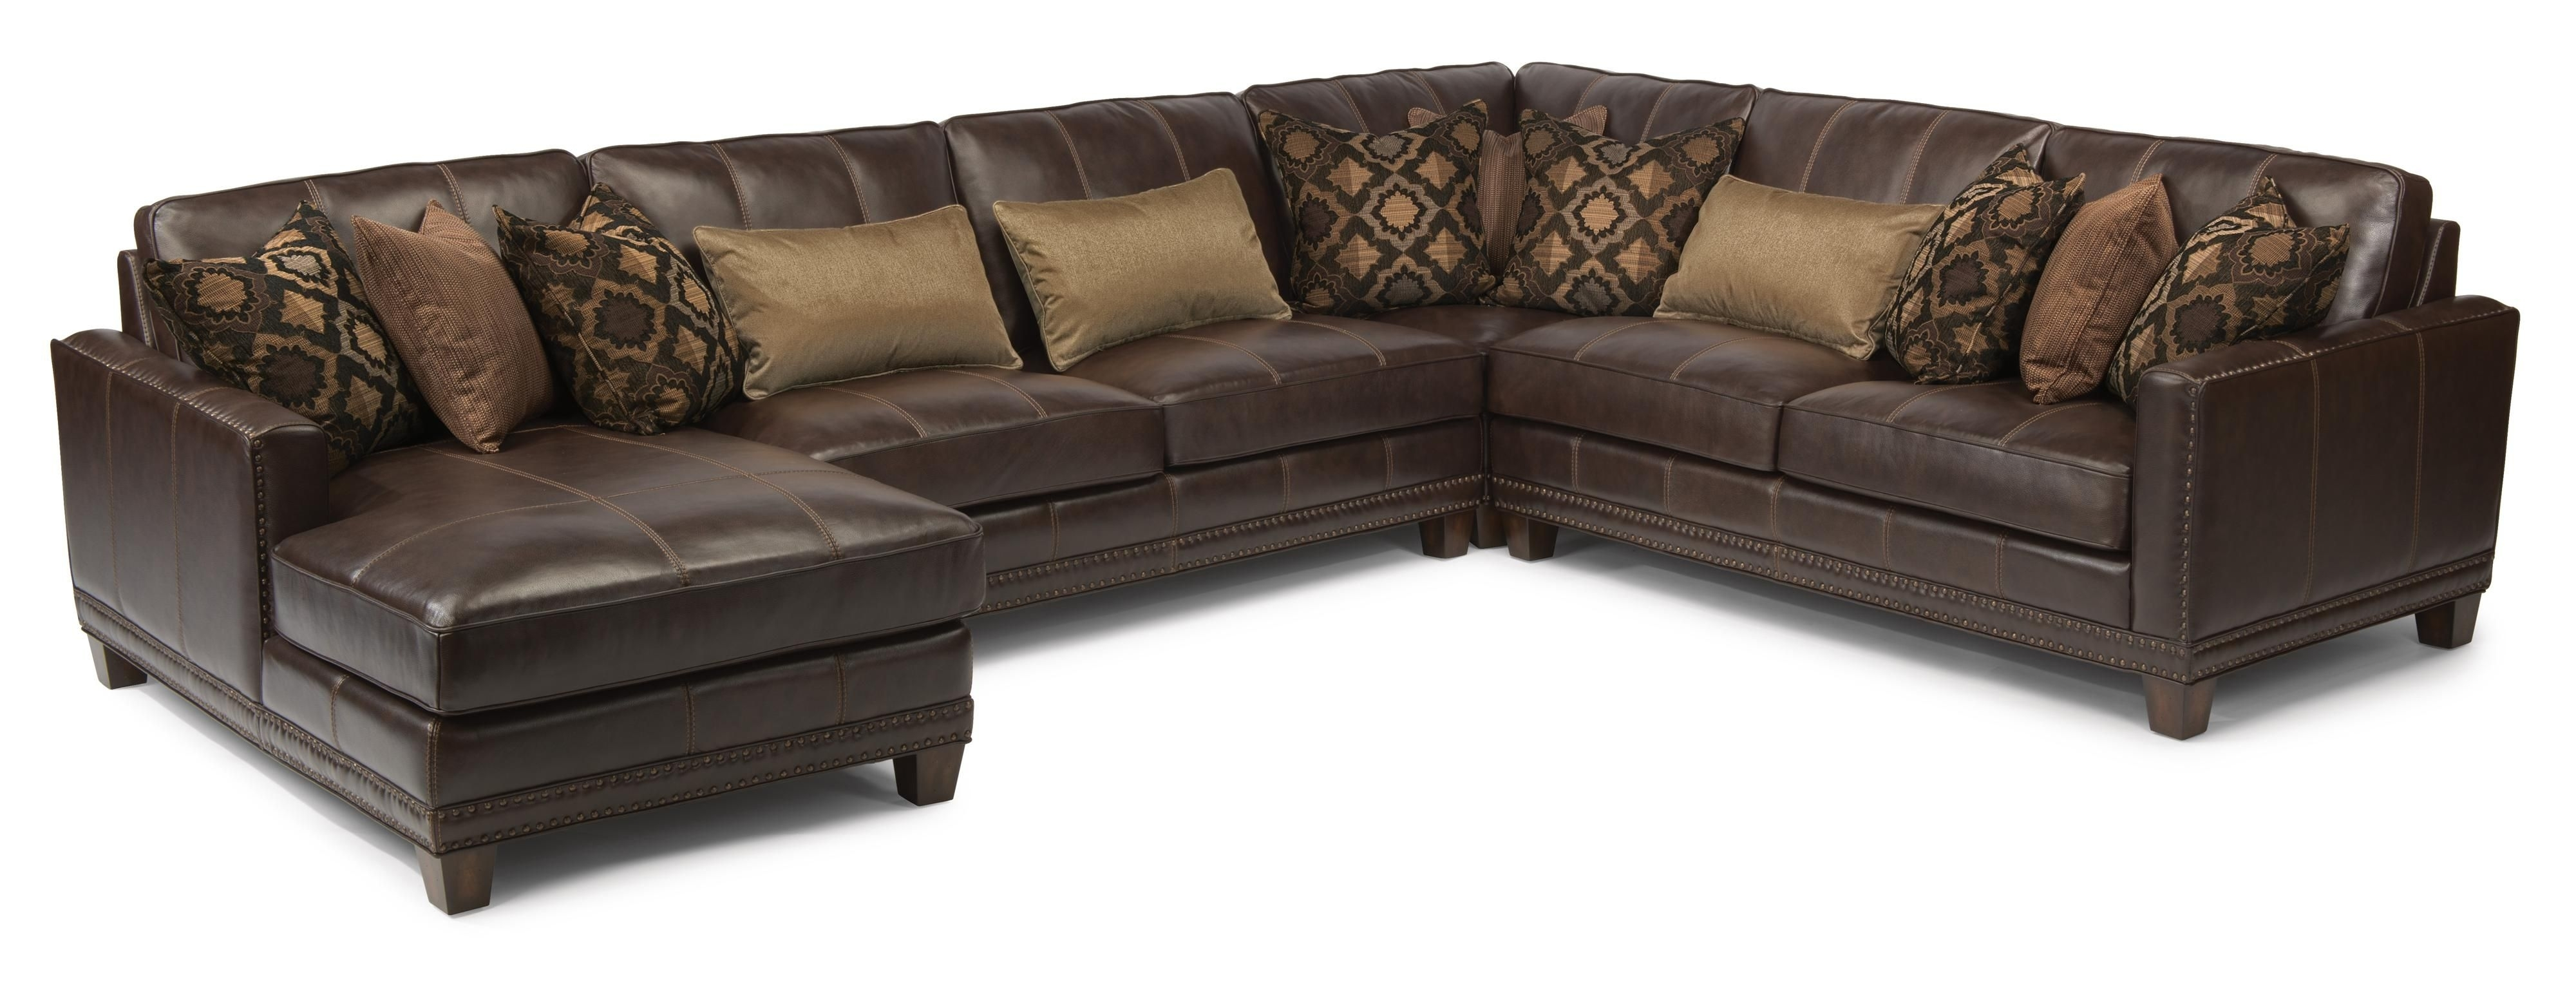 Latitudes – Port Royal Transitional Four Piece Sectional Sofa With Within Johnson City Tn Sectional Sofas (View 2 of 10)